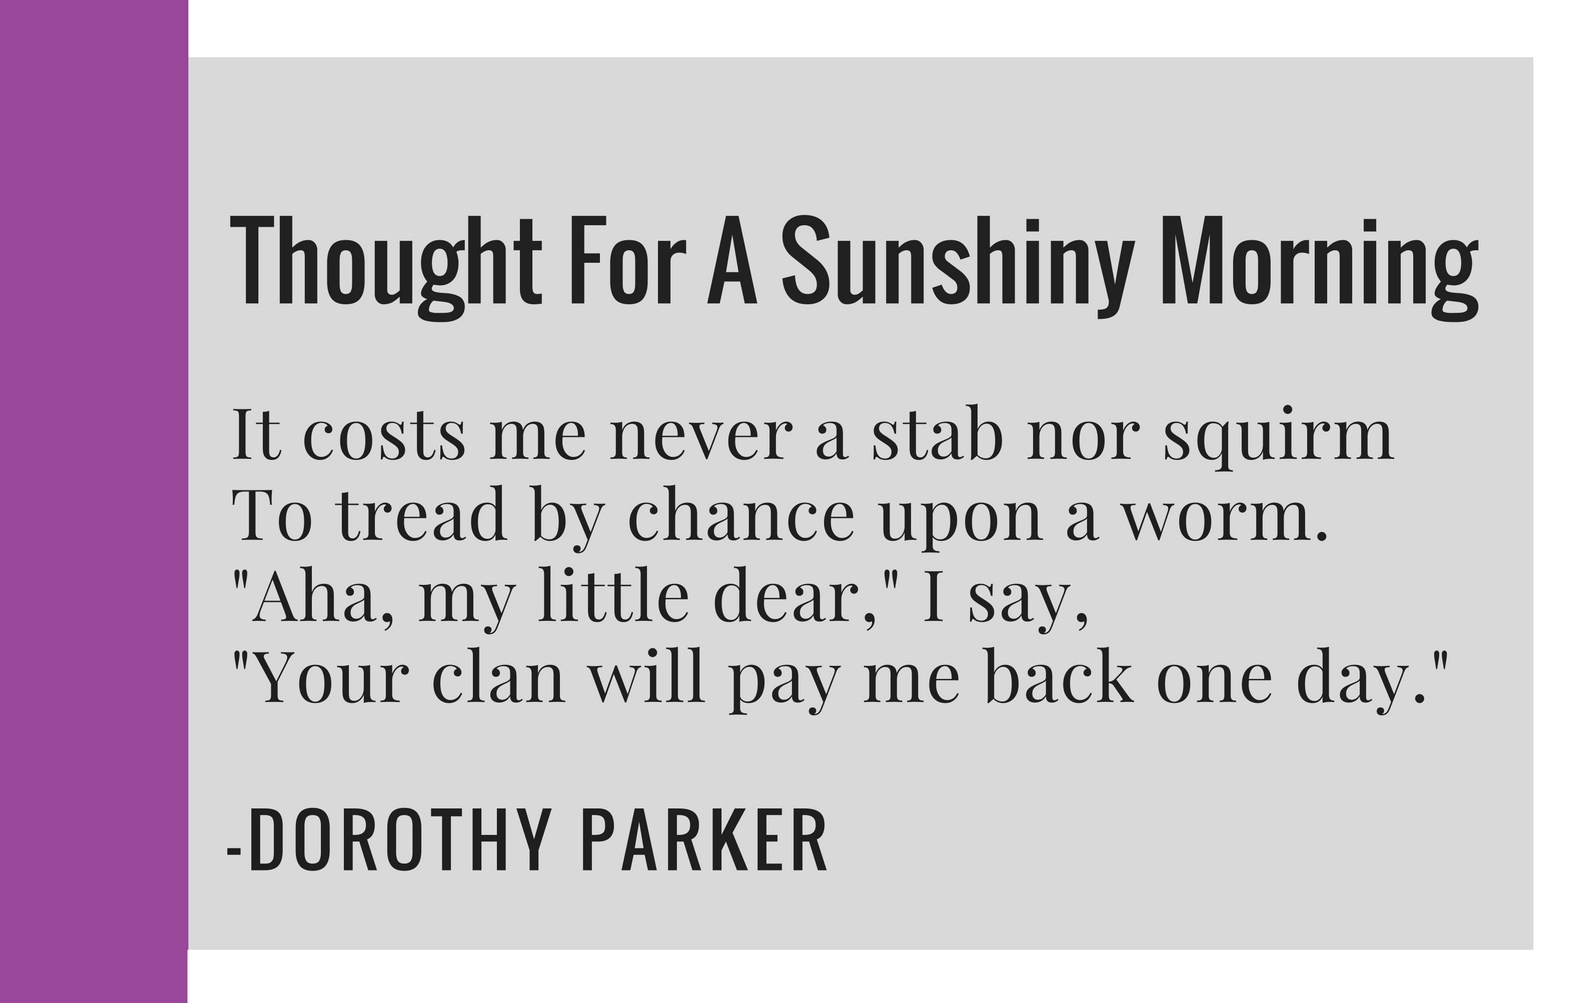 Thought For A Sunshiny Morning